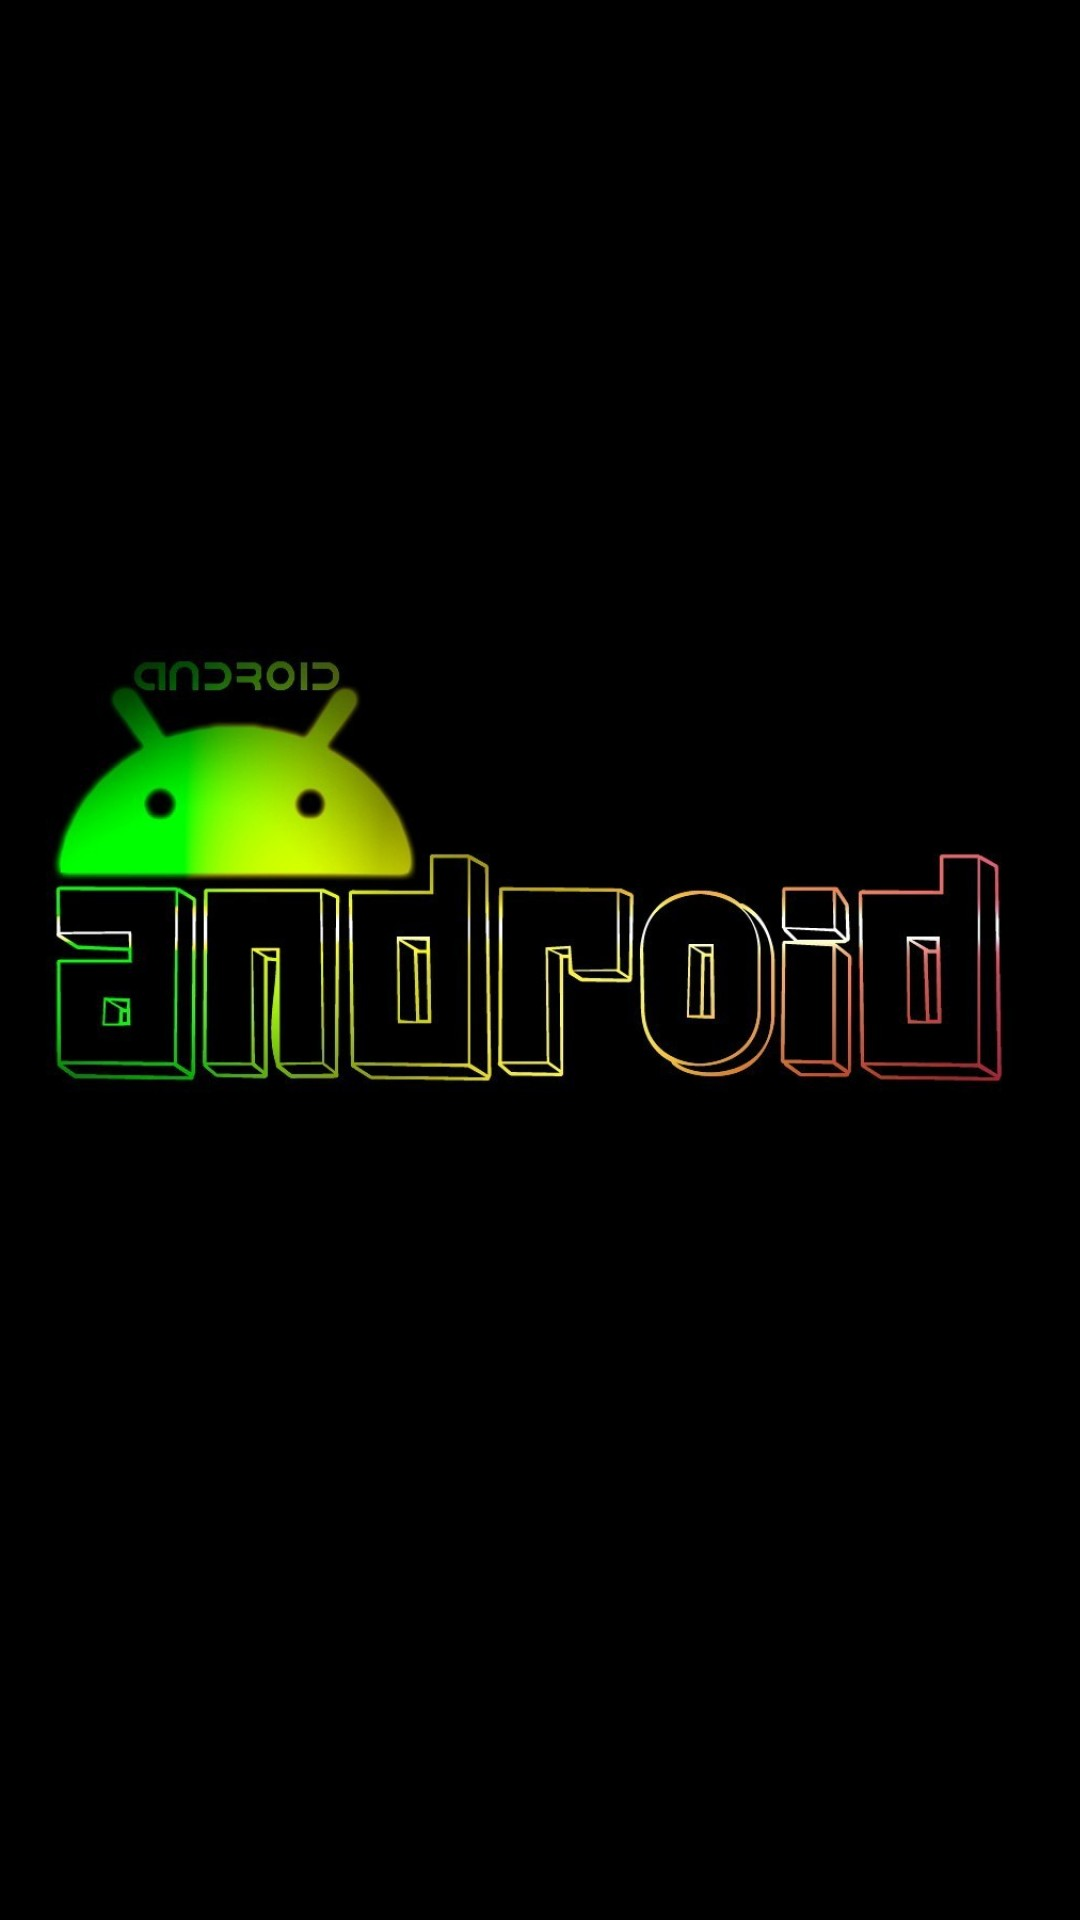 hd android logo wallpaper for mobile 1080x1920 1080x1920